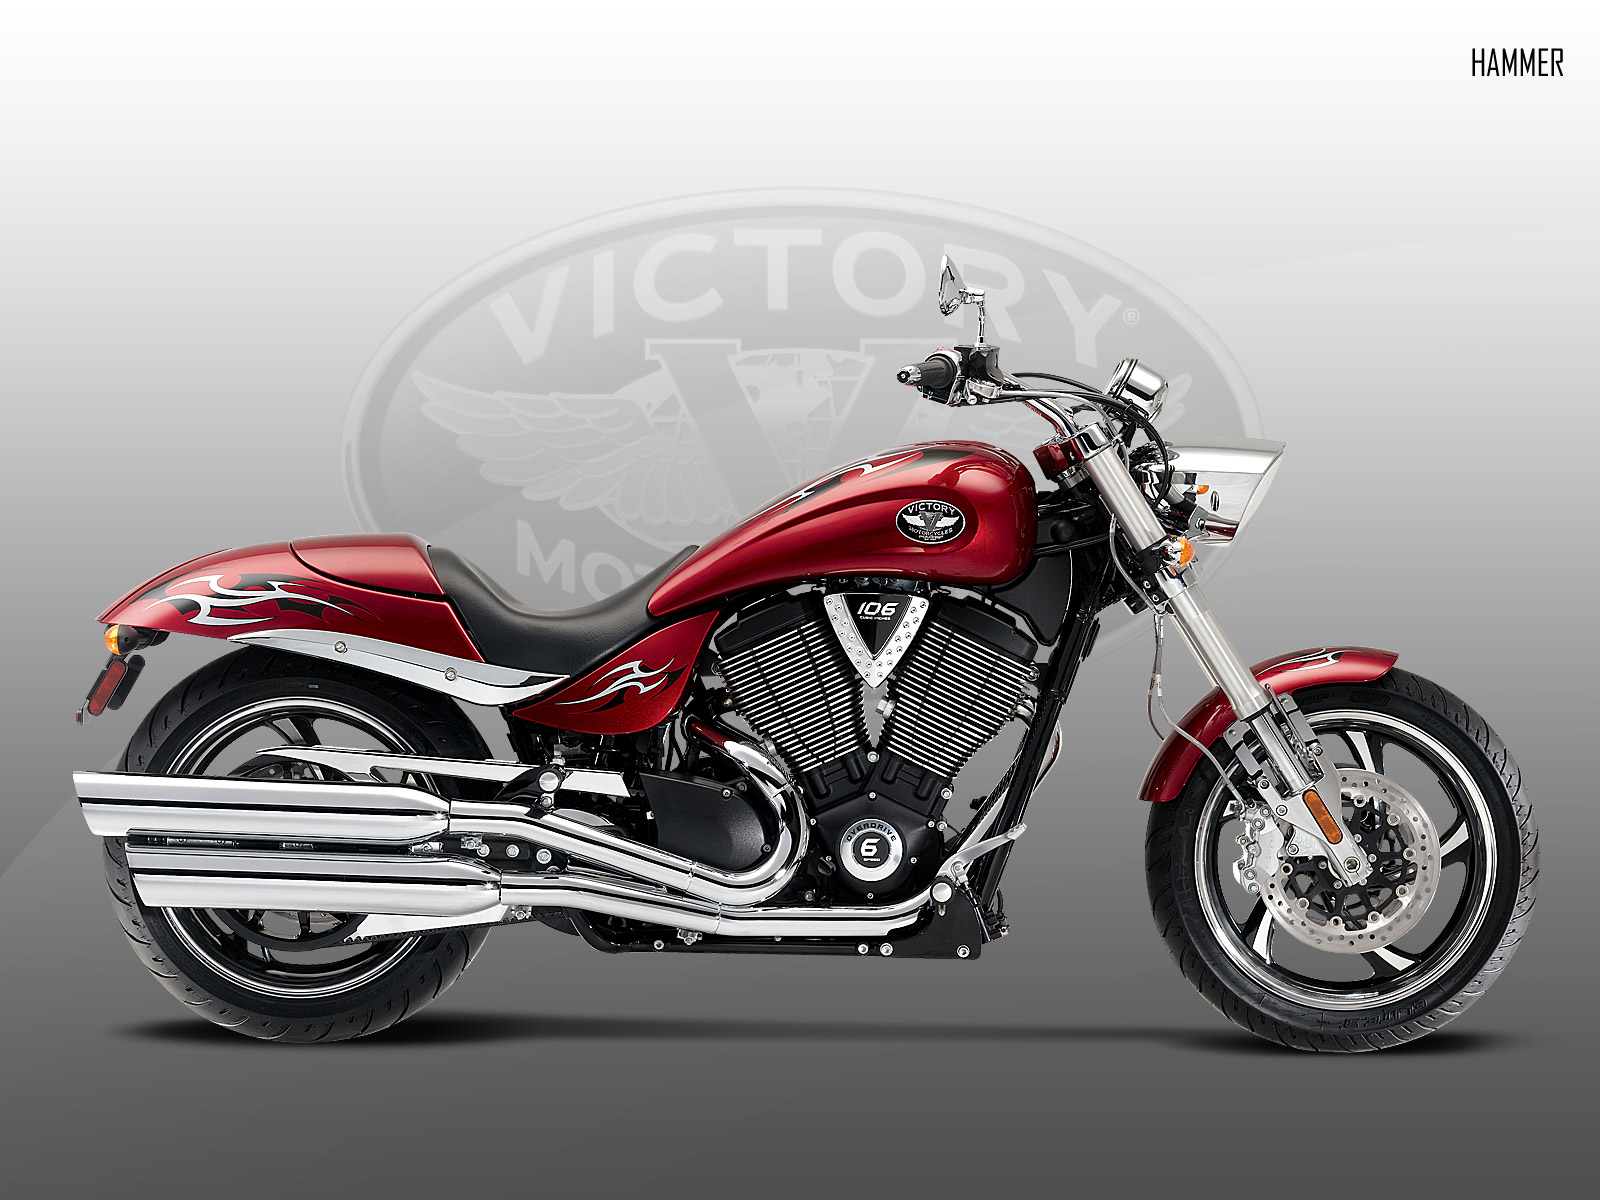 Victory Hammer 2009 #7